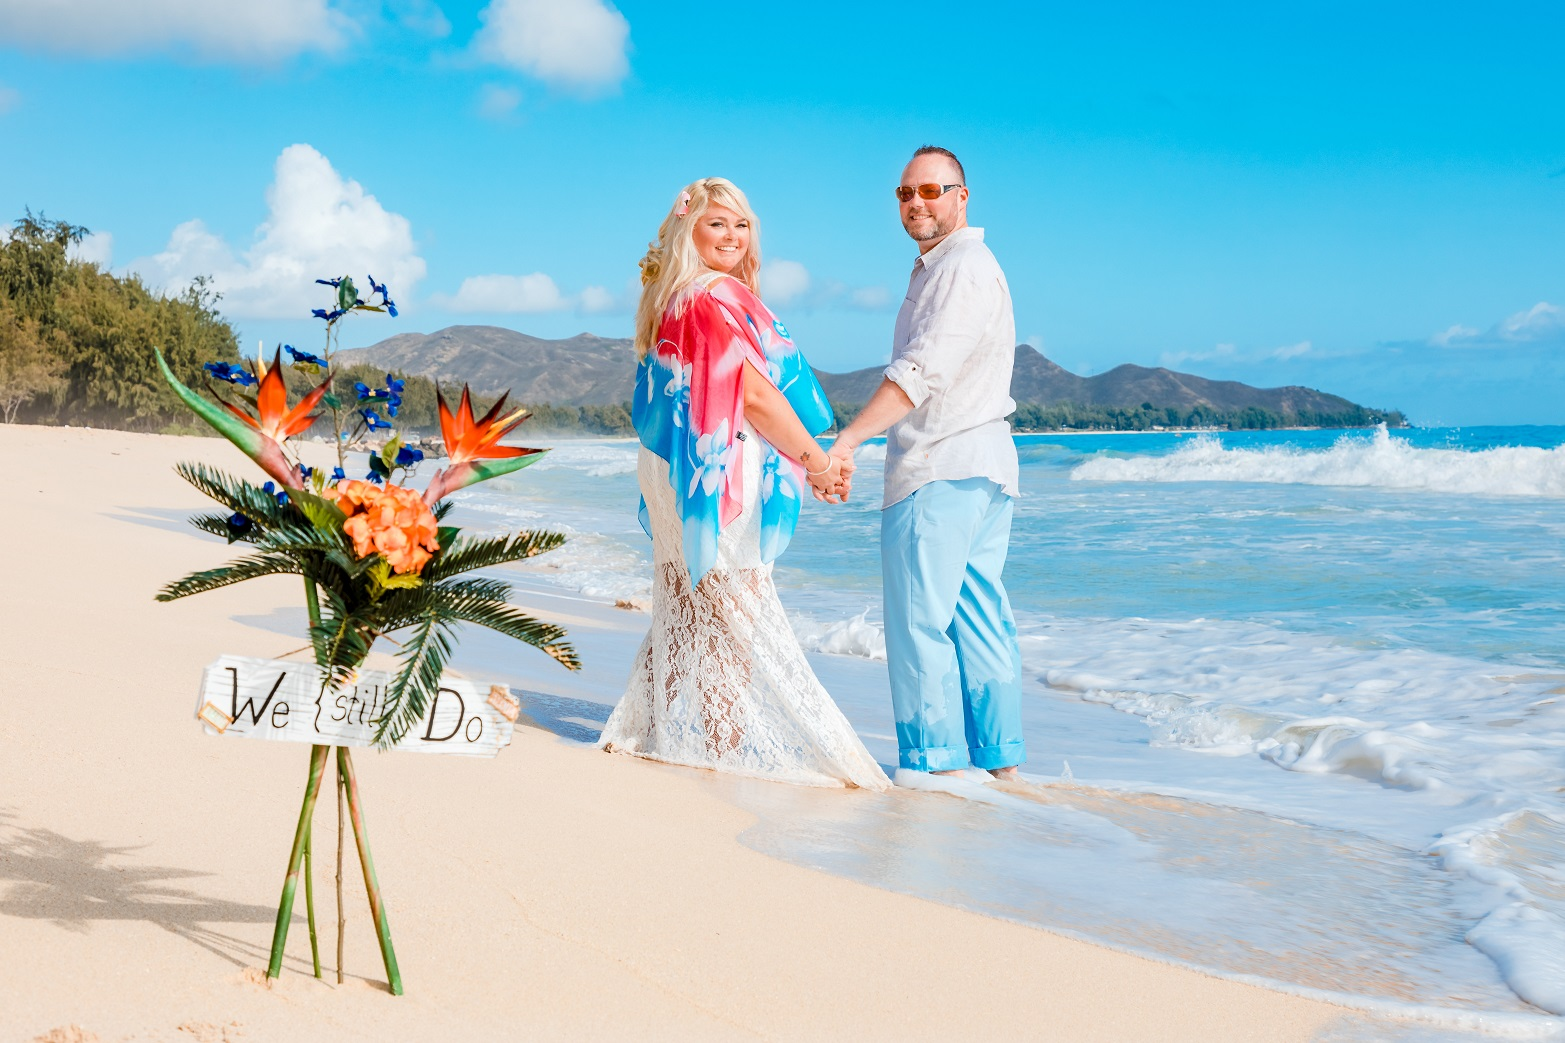 couples anniversary portrait on the beach we still do vow renewal